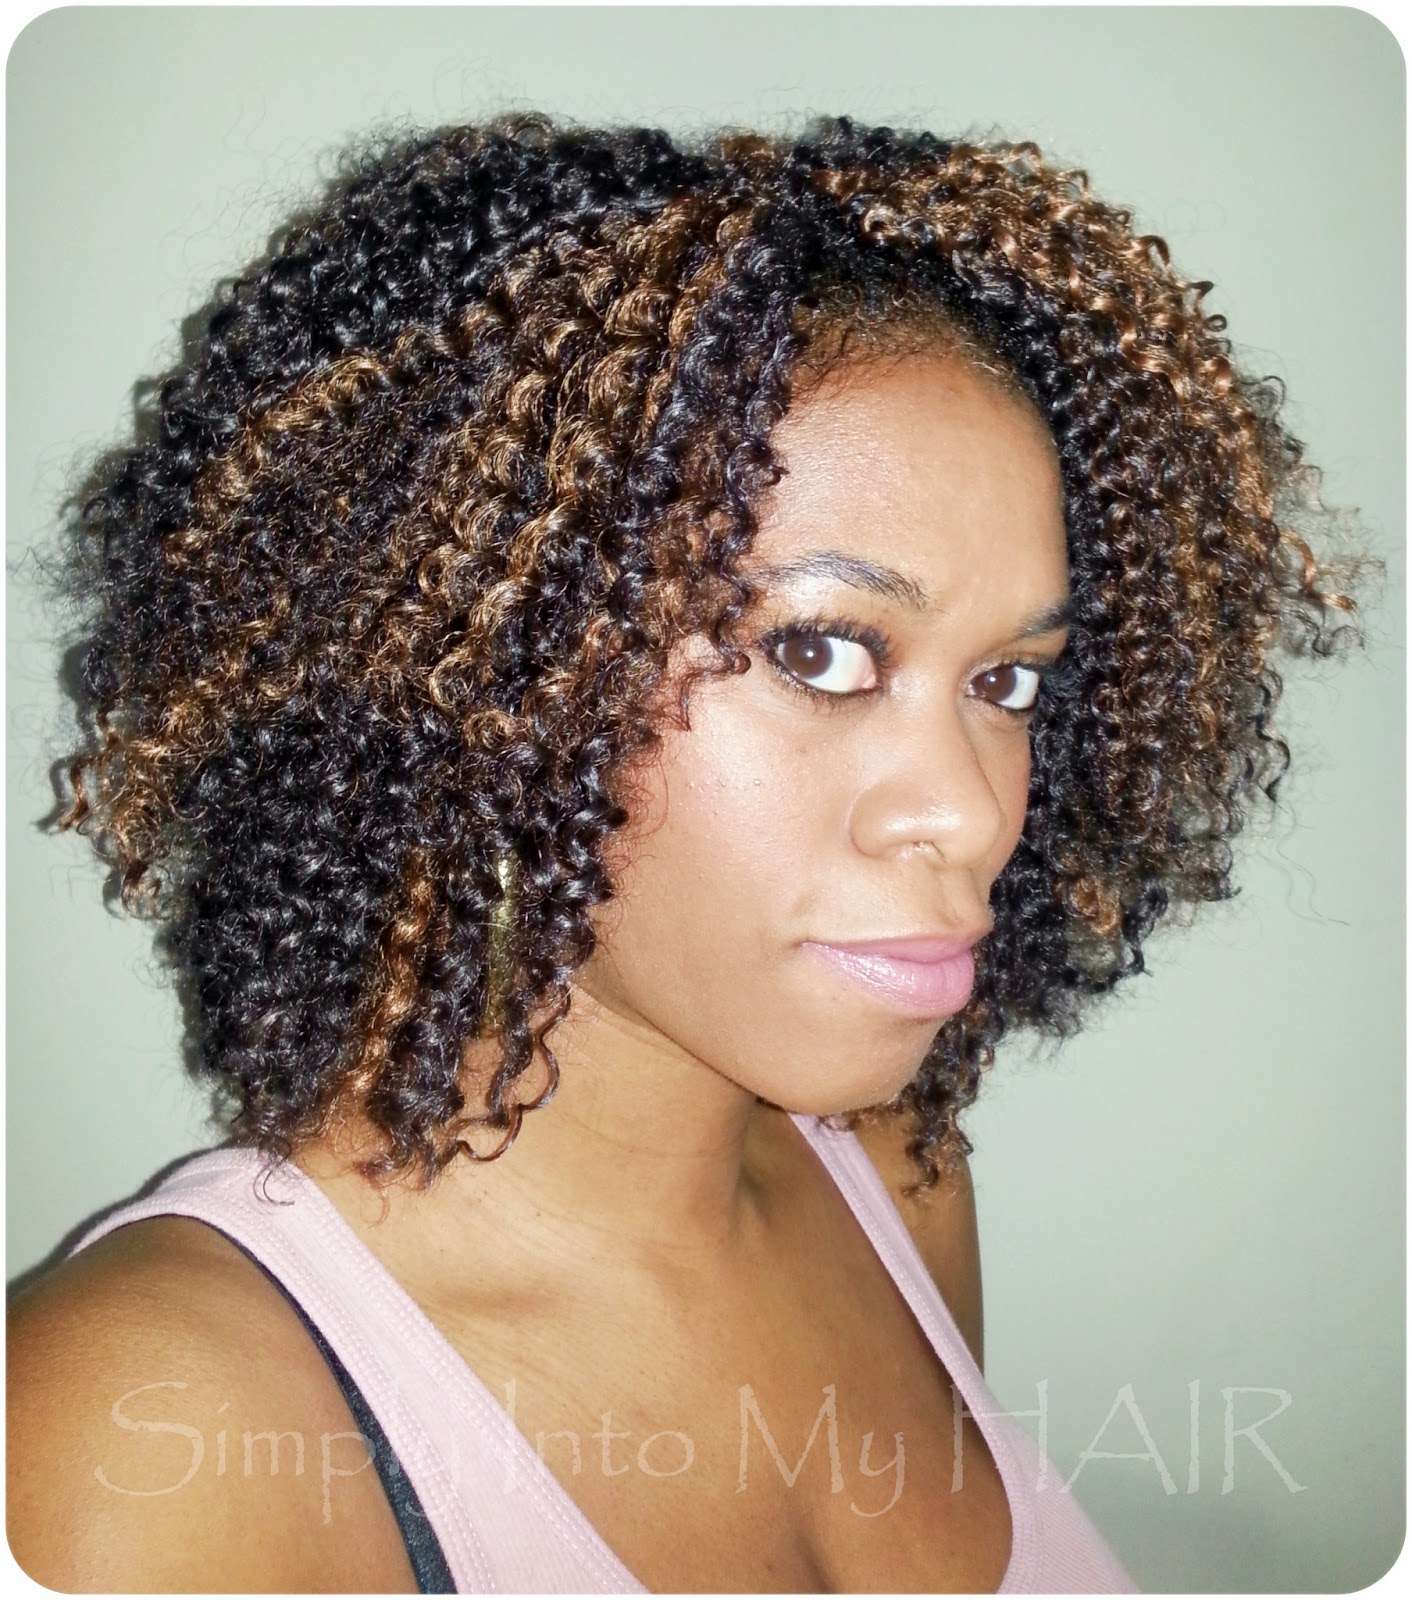 Crocheting Natural Hair : installed my 7th set of crochet braids earlier this month at 5 ...